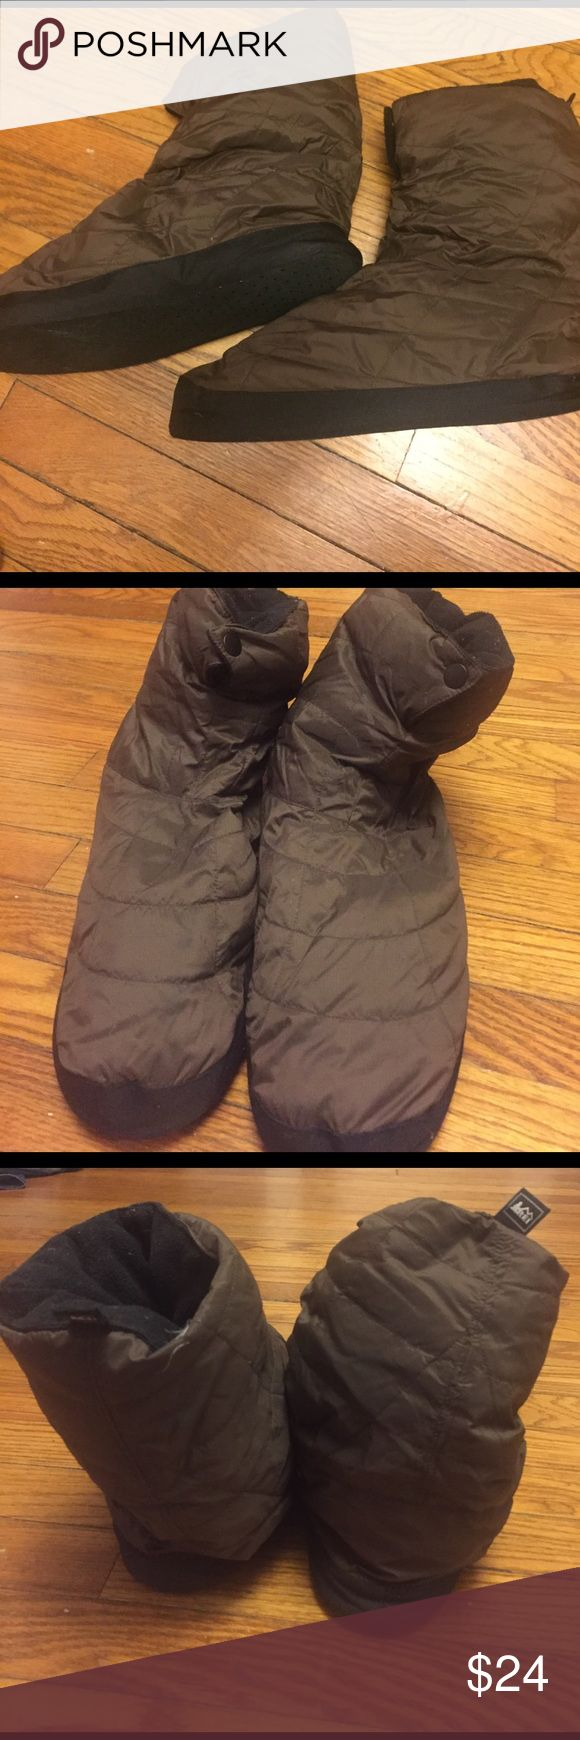 Down slippers. REI REI. Down slippers. Says men's Xl, but I think more like a men's 10. Good condition rei Shoes